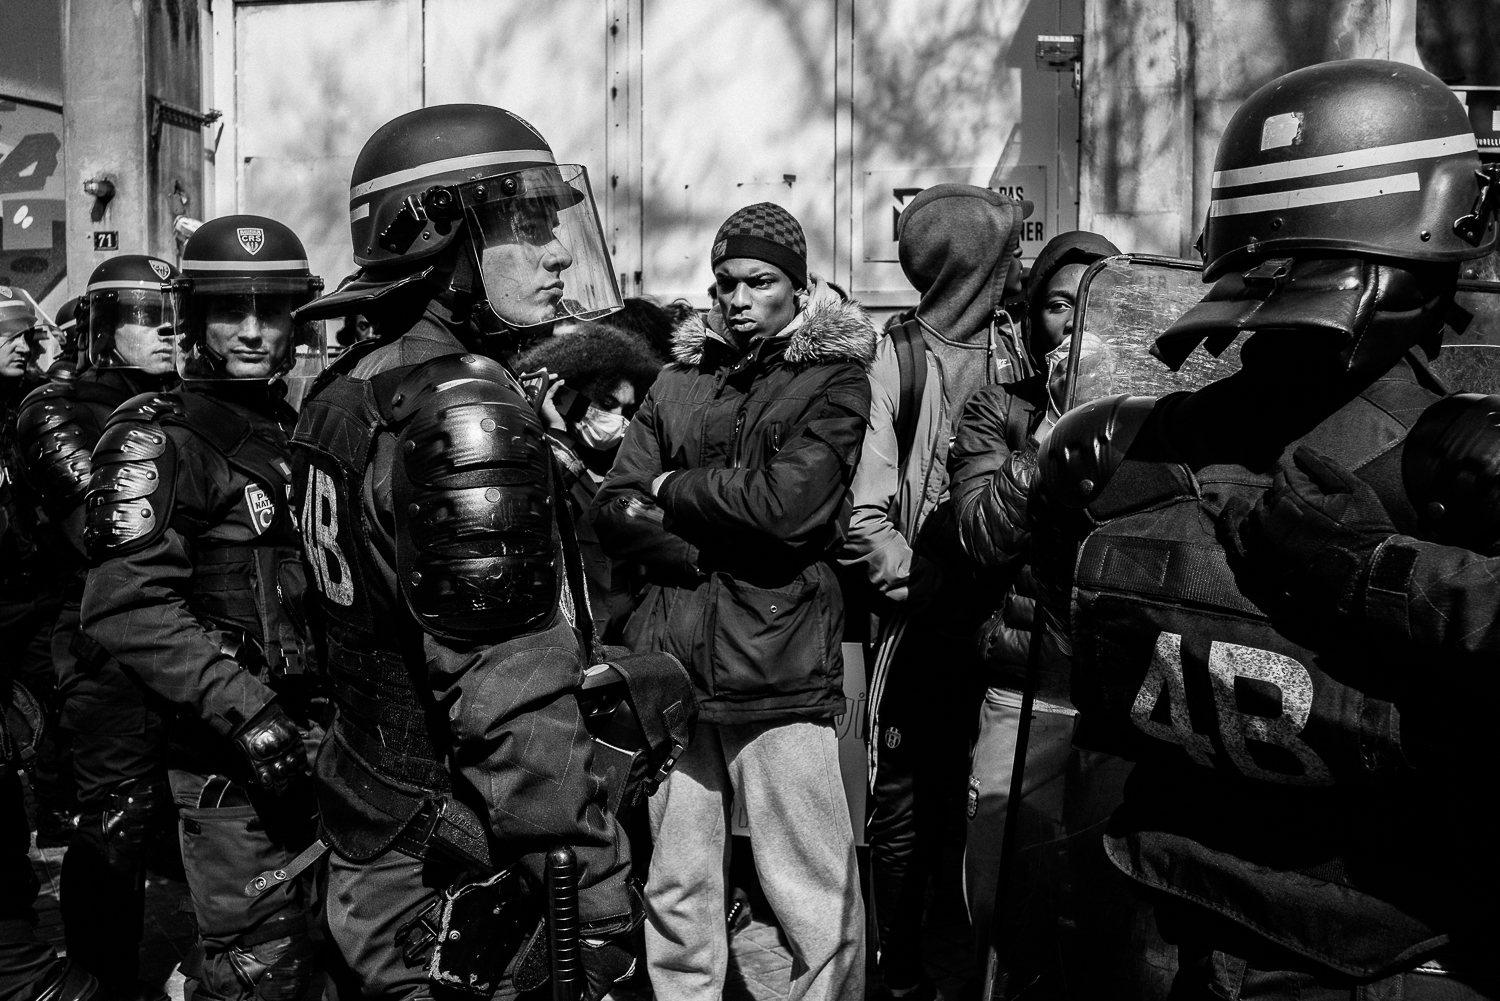 Riot police officers cordoning off a group of protestors, 5th April 2016.